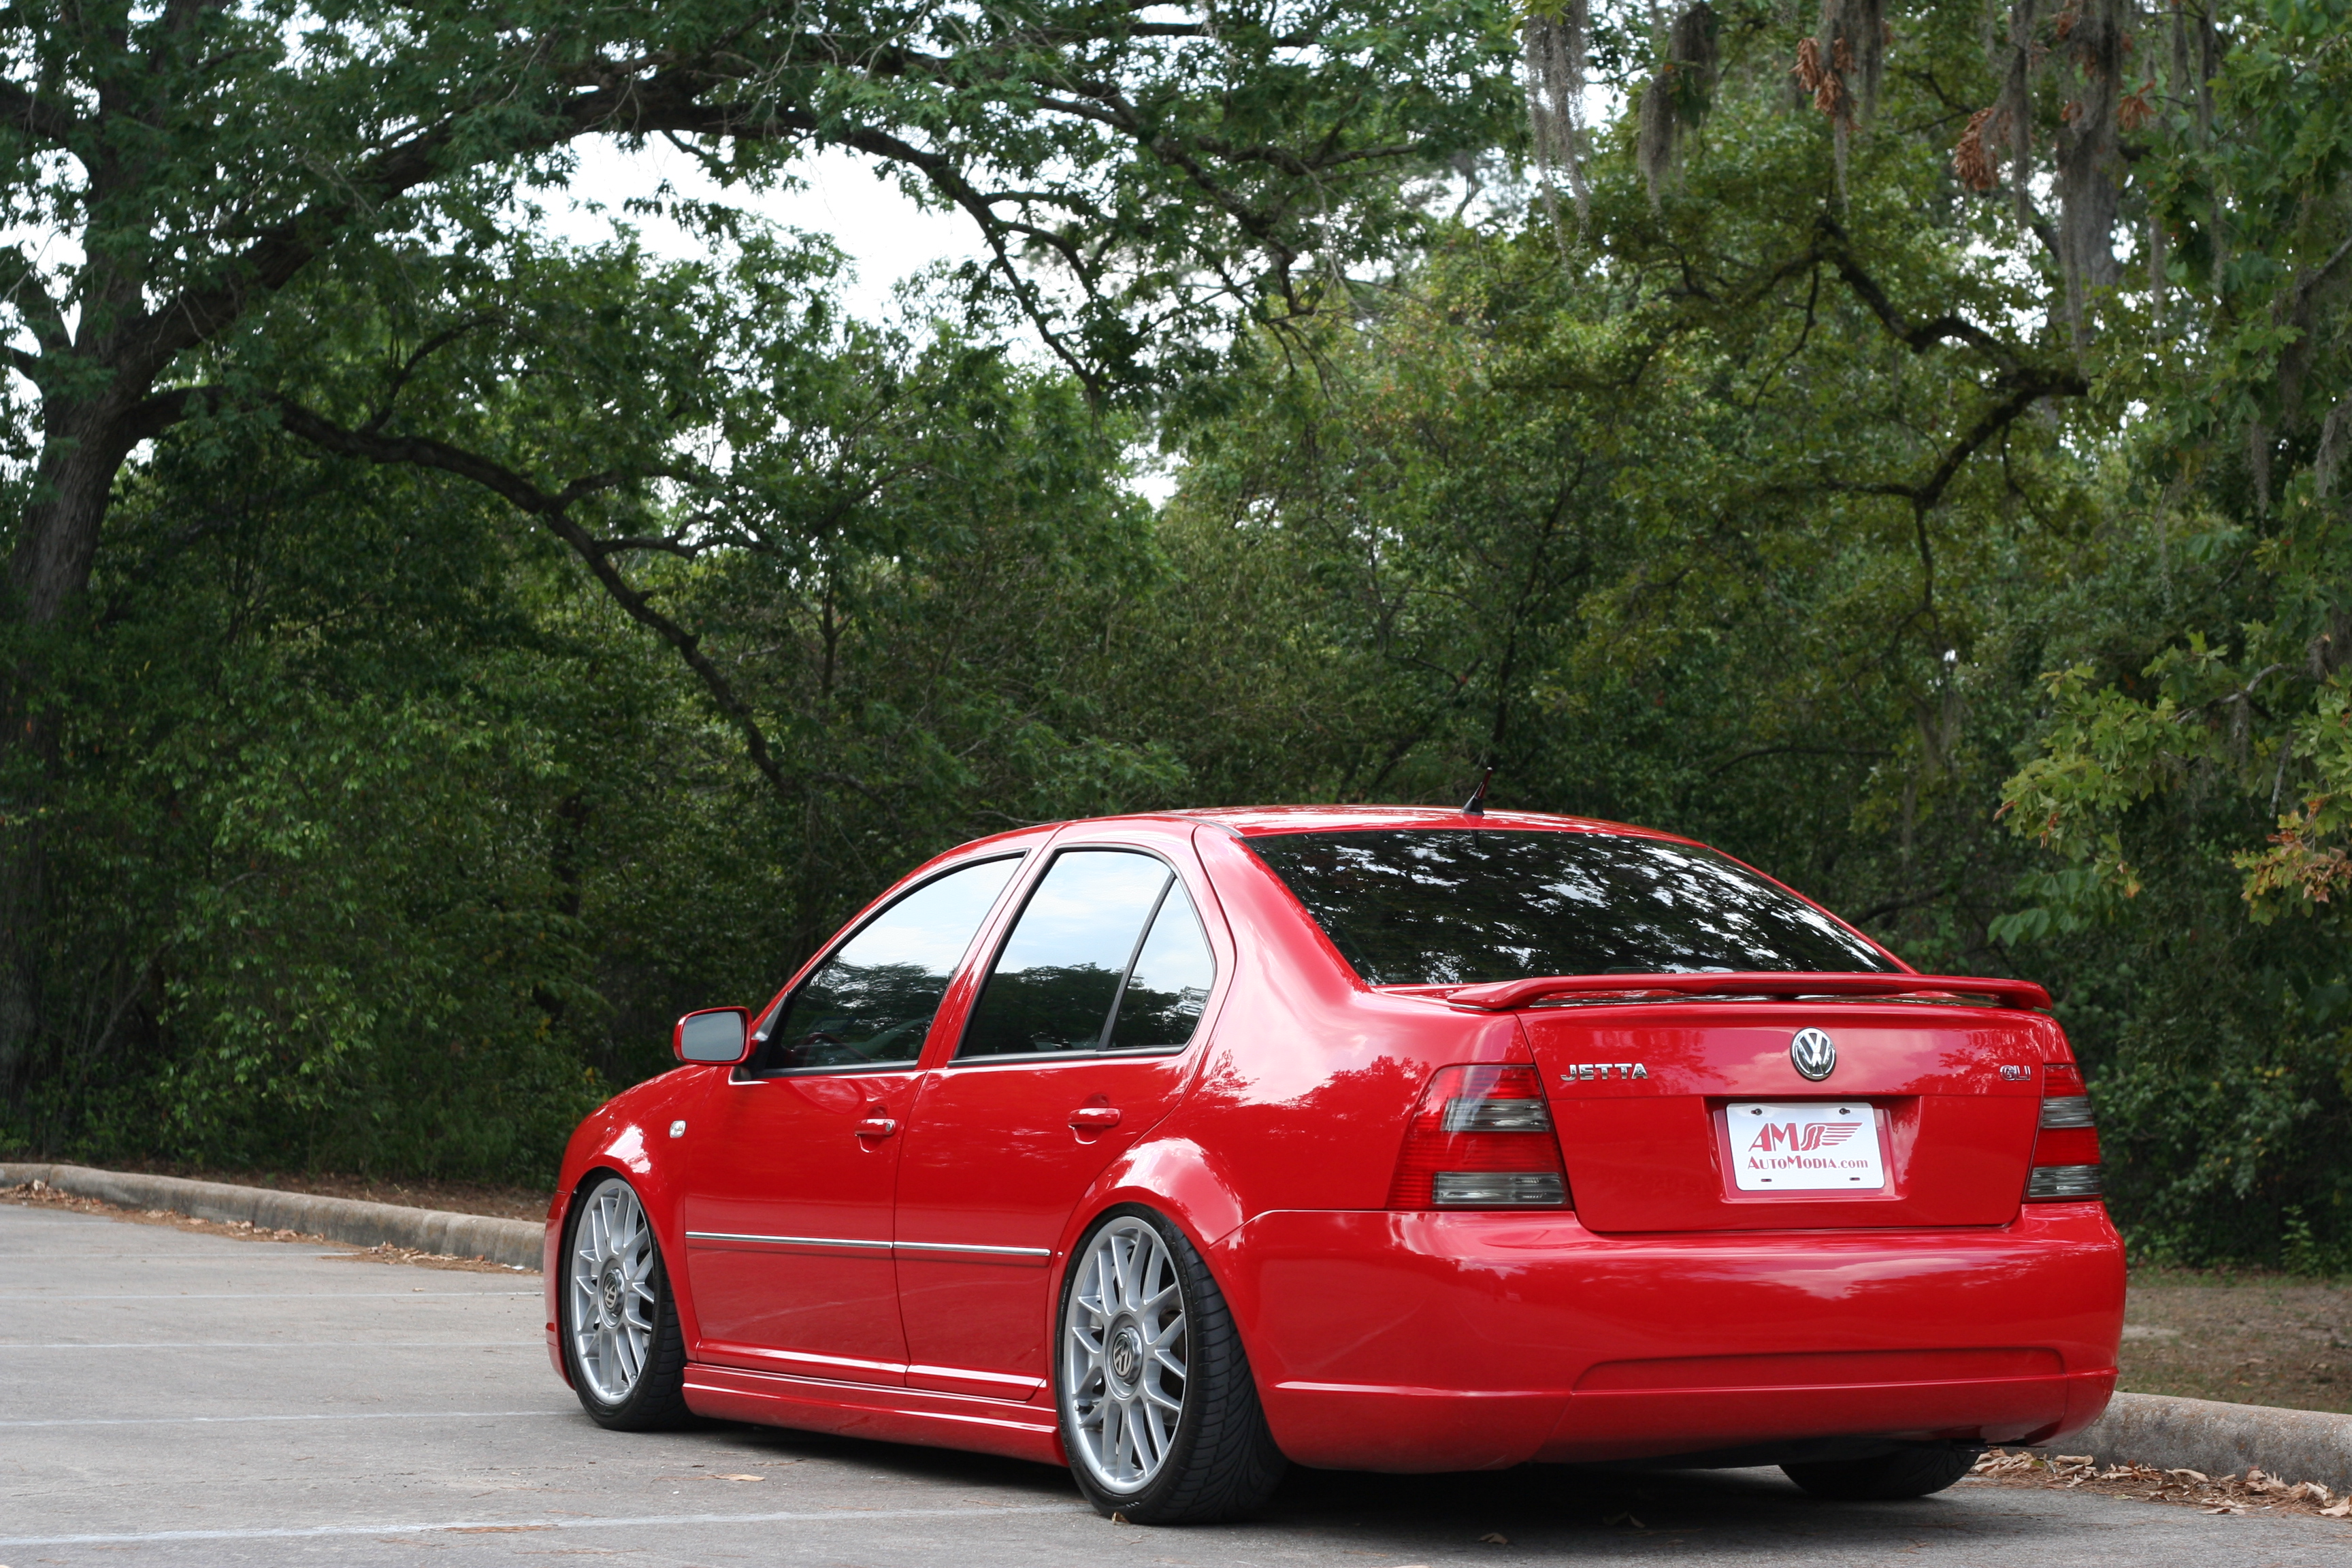 slammed 2000 vw jetta suspension with Nic Elizondos Lady In Red on Page 6 additionally Mk4 Jetta On Audi Wheels together with Showthread likewise Vw Polo Gti Launched together with 2013 Accord coupe.